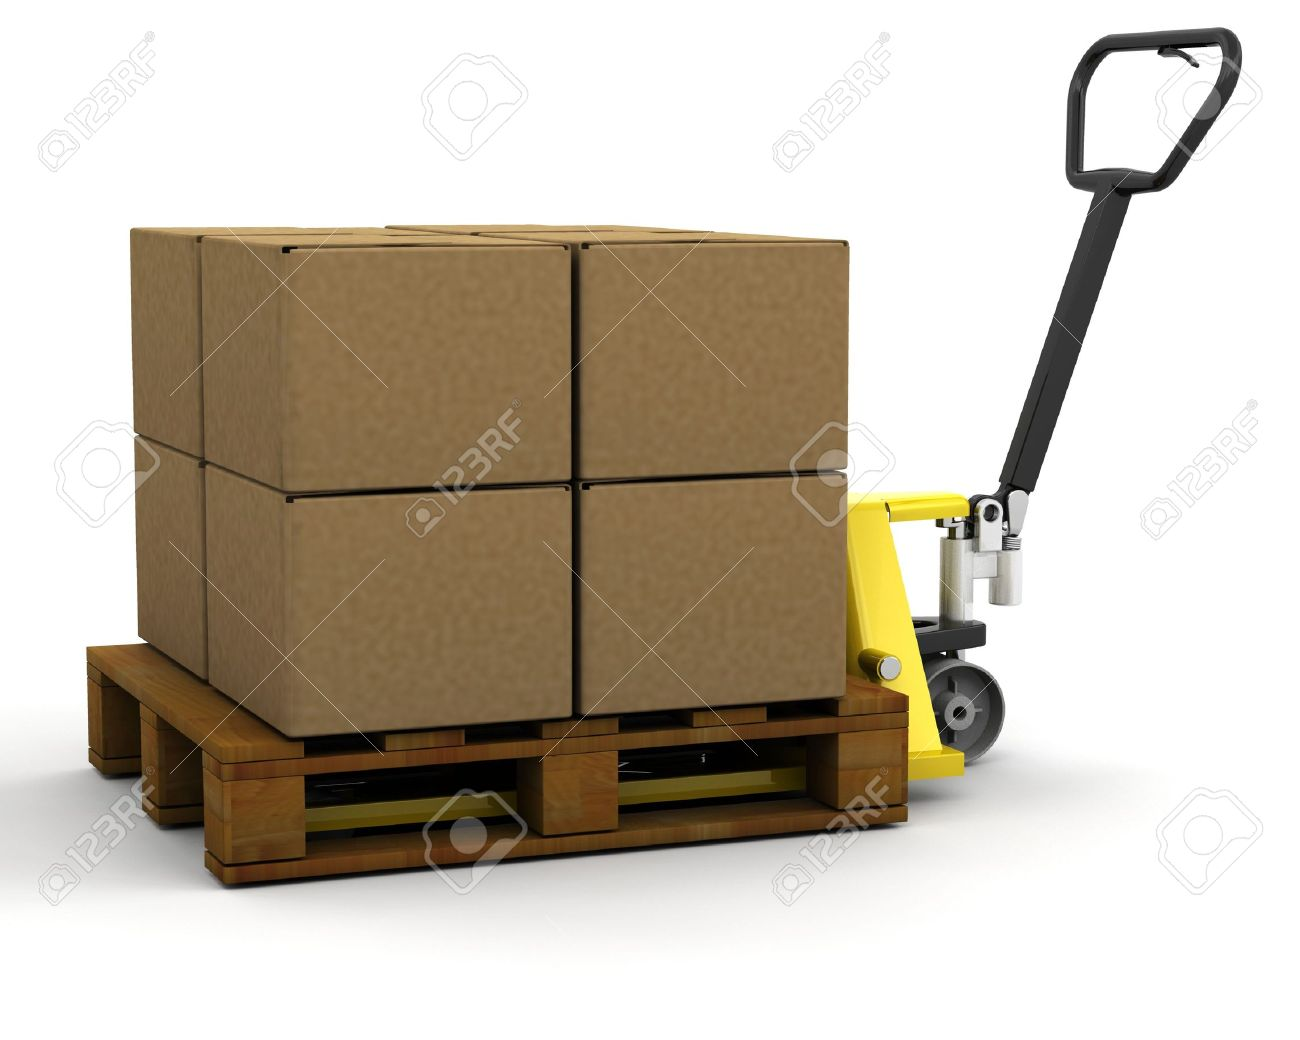 3D render of a pallet truck stacked with boxes Stock Photo - 3083478